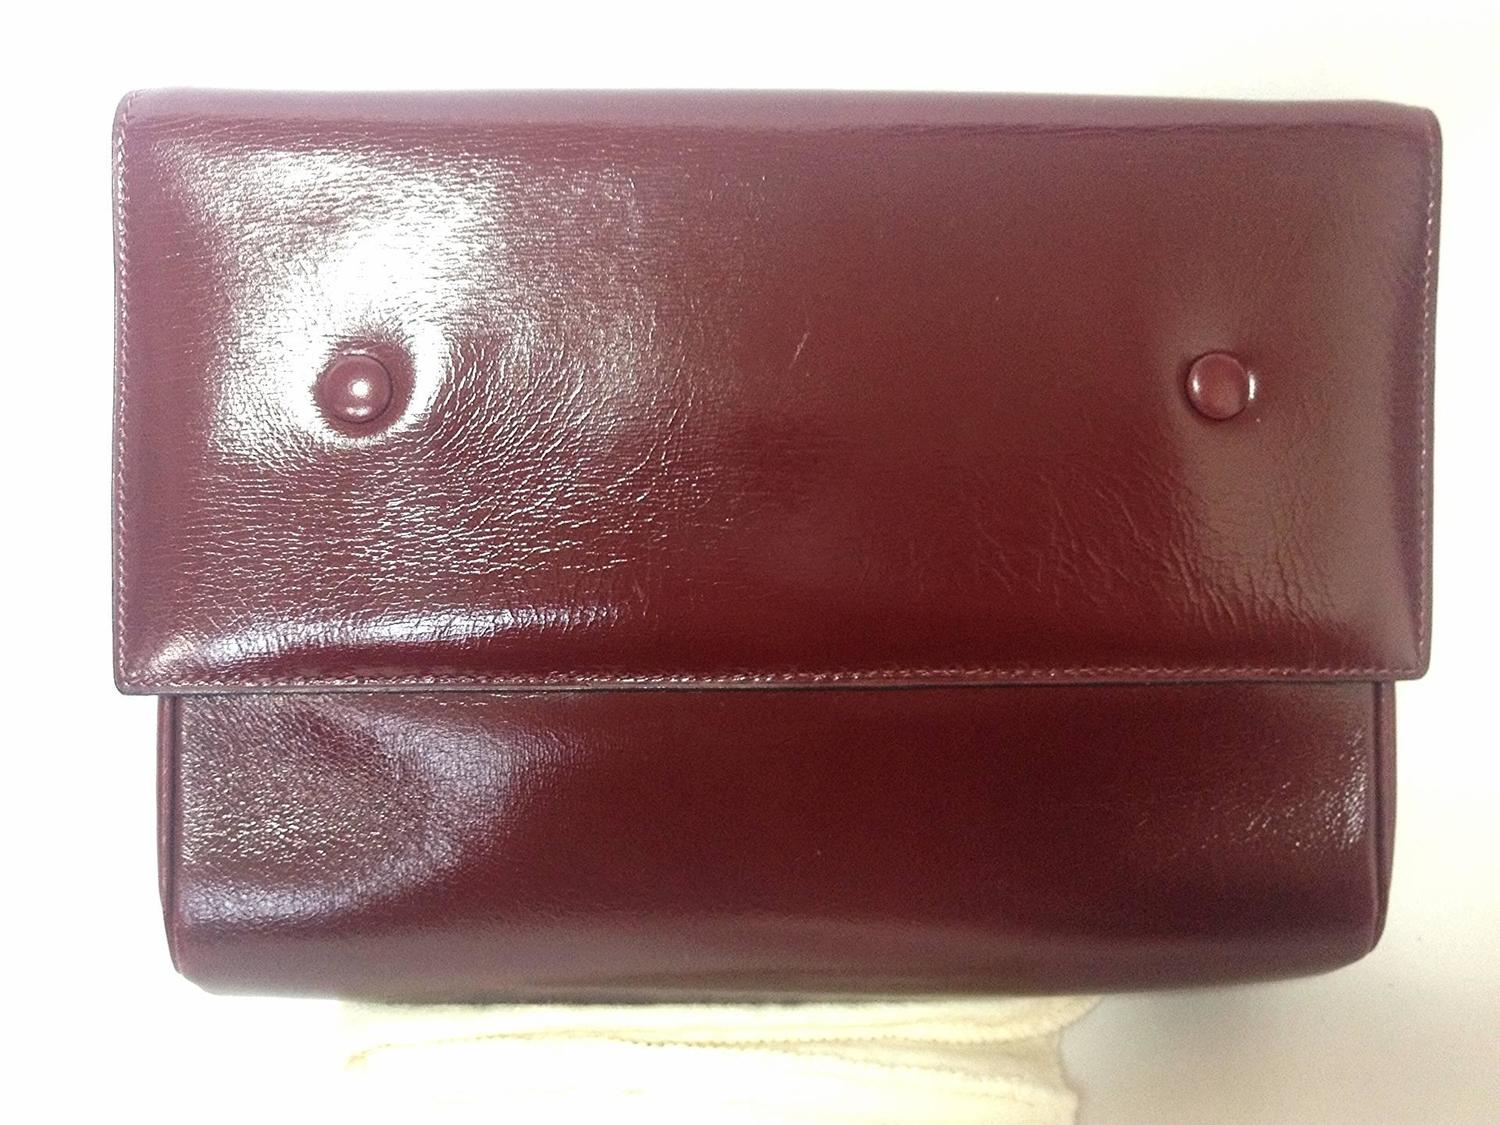 buy replica bag - intage CELINE genuine wine brown leather clutch bag with golden ...